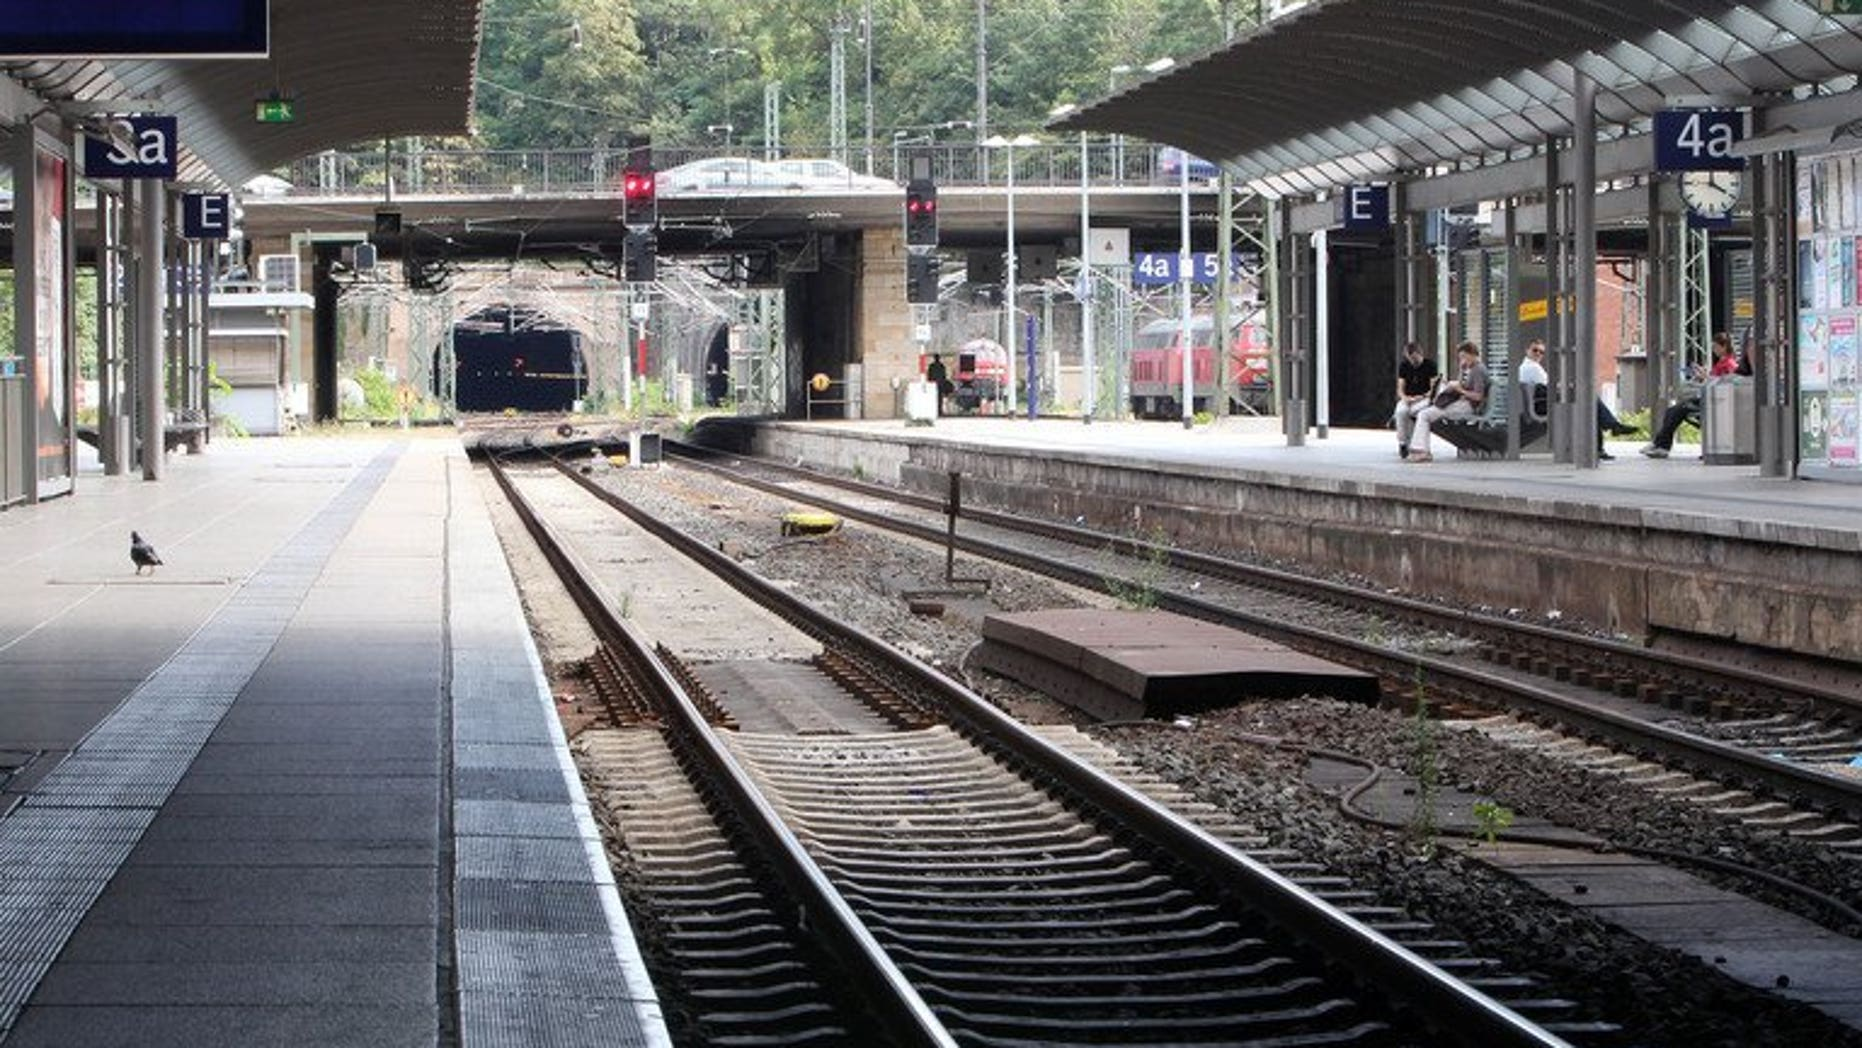 This file photo shows the main railway station in Mainz, western Germany, pictured on August 12, 2013. Al-Qaeda is plotting attacks on Europe's high-speed rail network, German mass circulation daily Bild reported on Monday, citing intelligence sources.